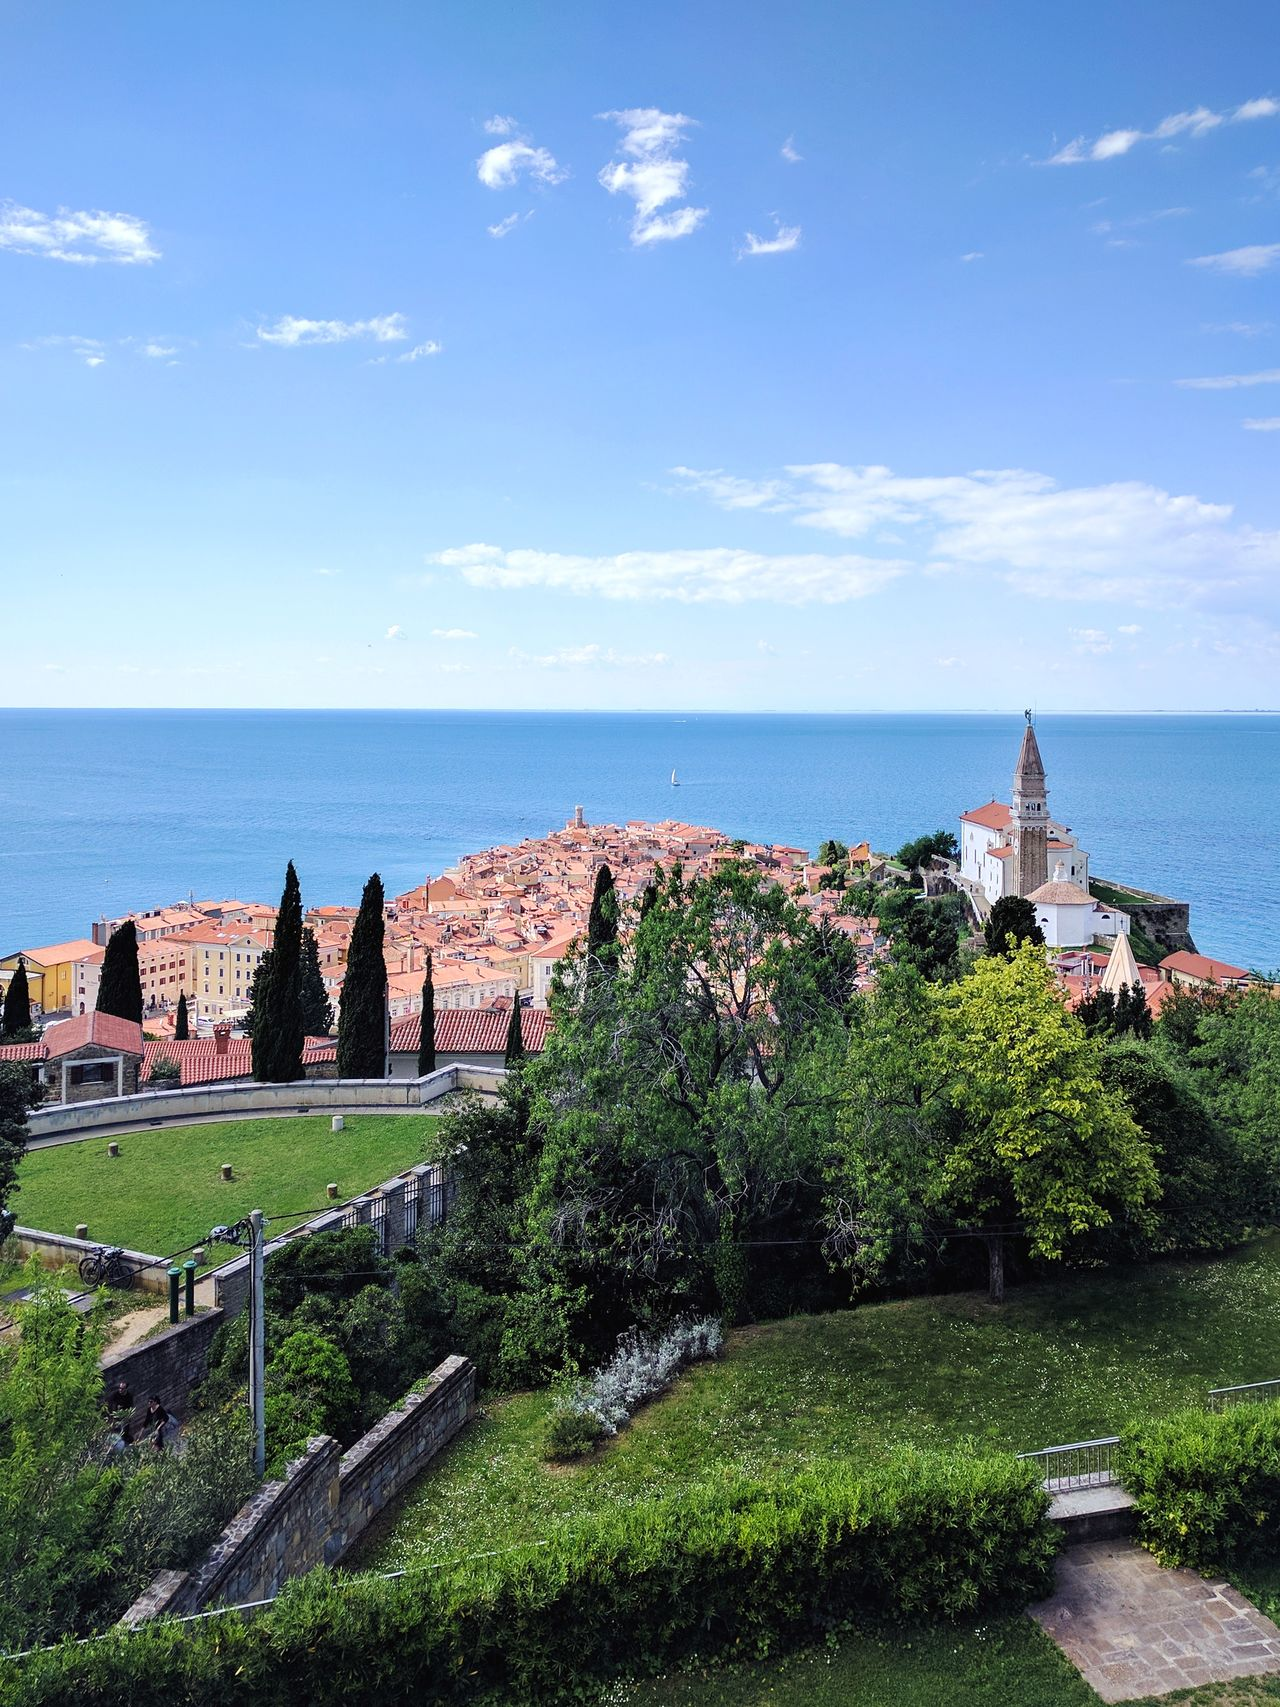 Sea No People Outdoors Day Sky Horizon Over Water Water Nature Flower Old Buildings Old Town Oldtown Old City Historic Historic City Slovenia Castle Piran Mediterranean  Mediterranean Coast Mediterania